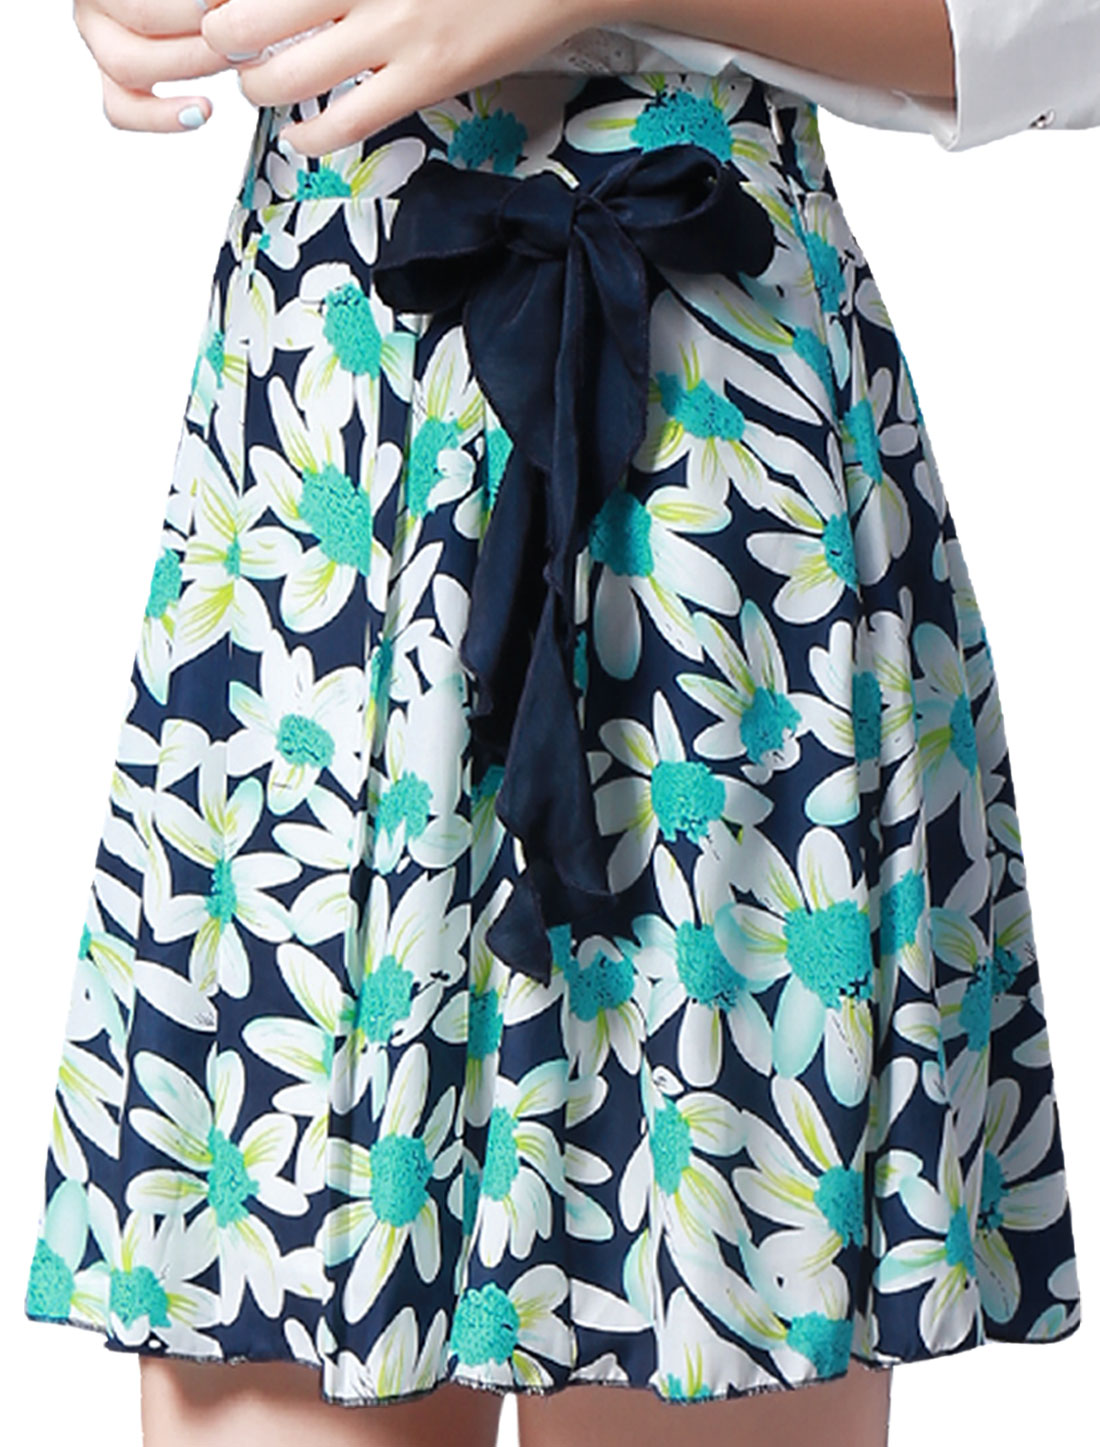 Women Elegant Hidden Side Zipper Floral Print Pleated Skirt Navy Blue M